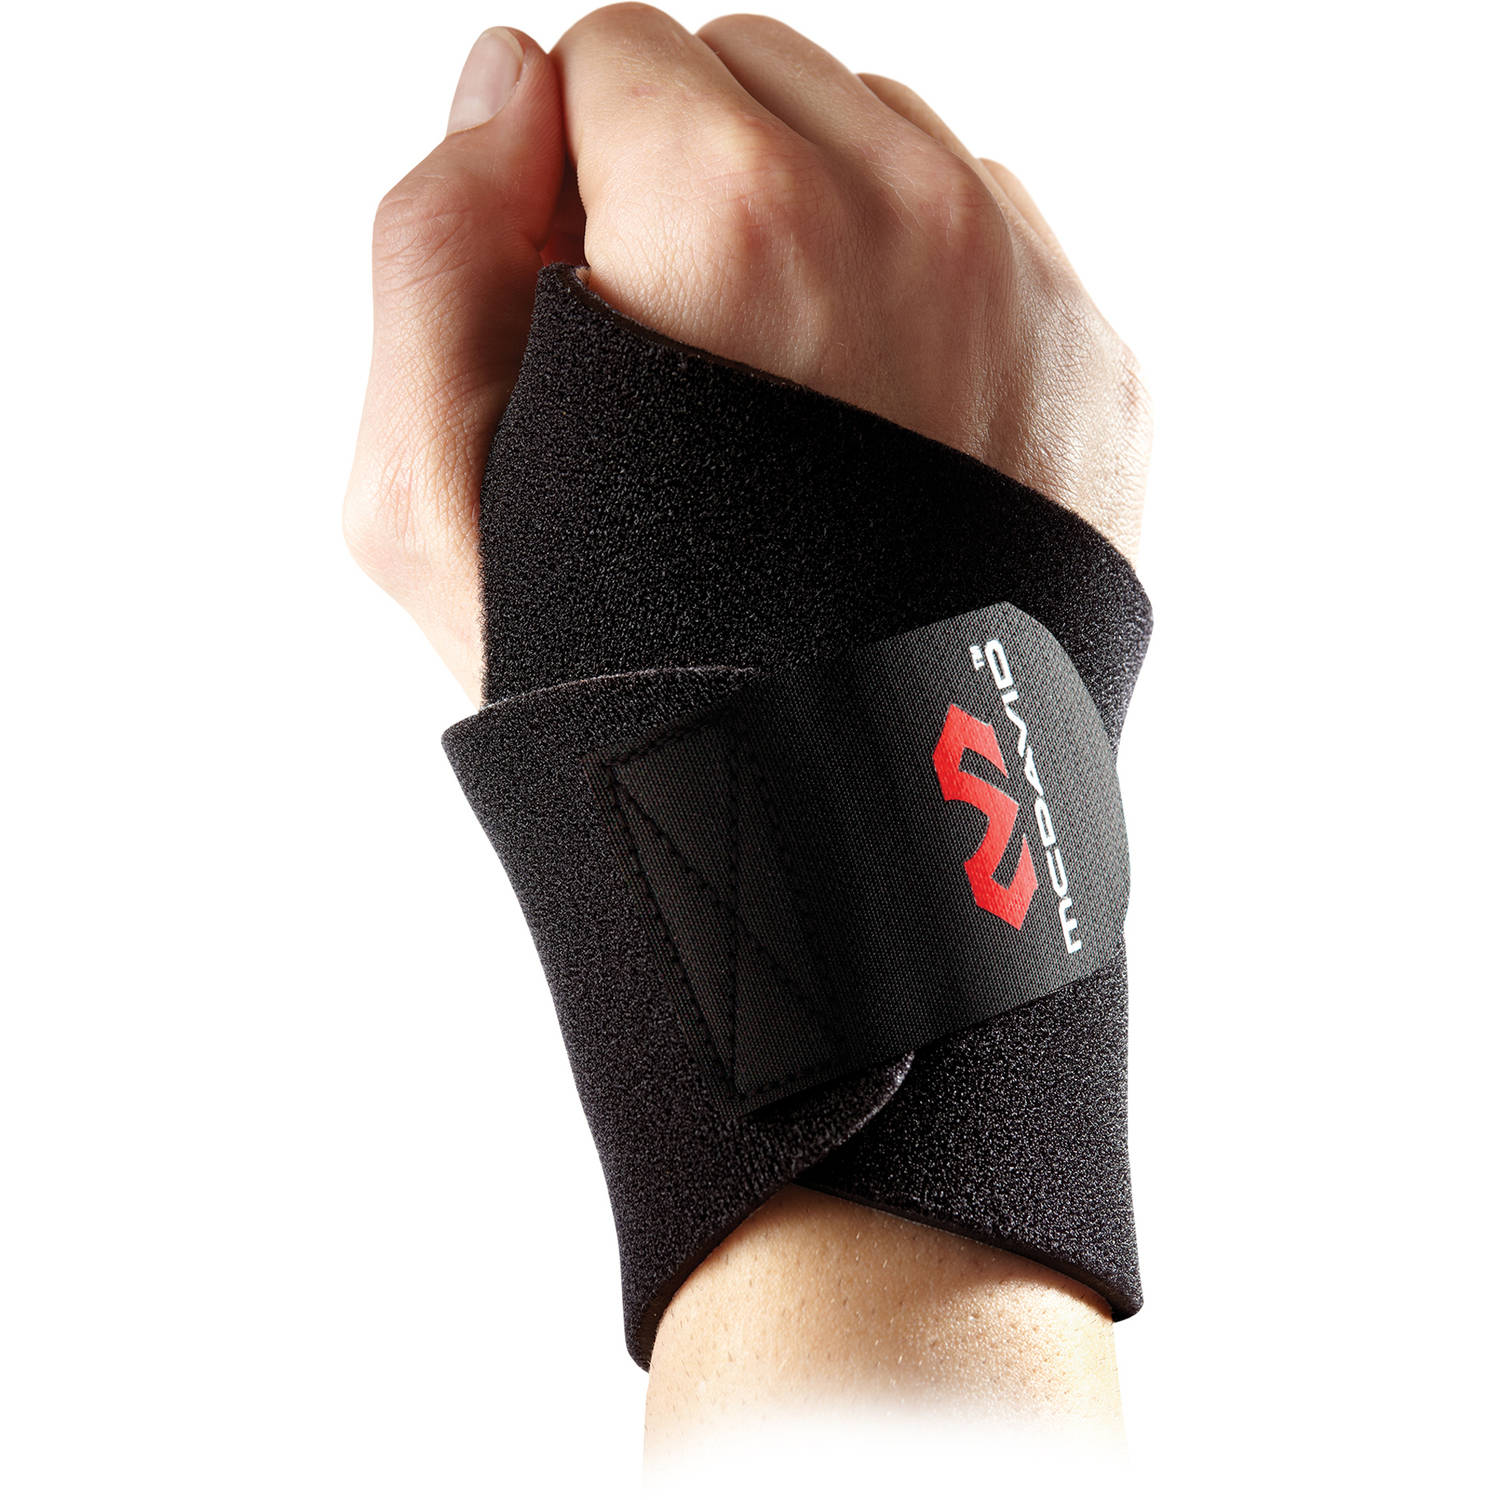 McDavid Level 1 Wrist Wrap/Adjustable, Black